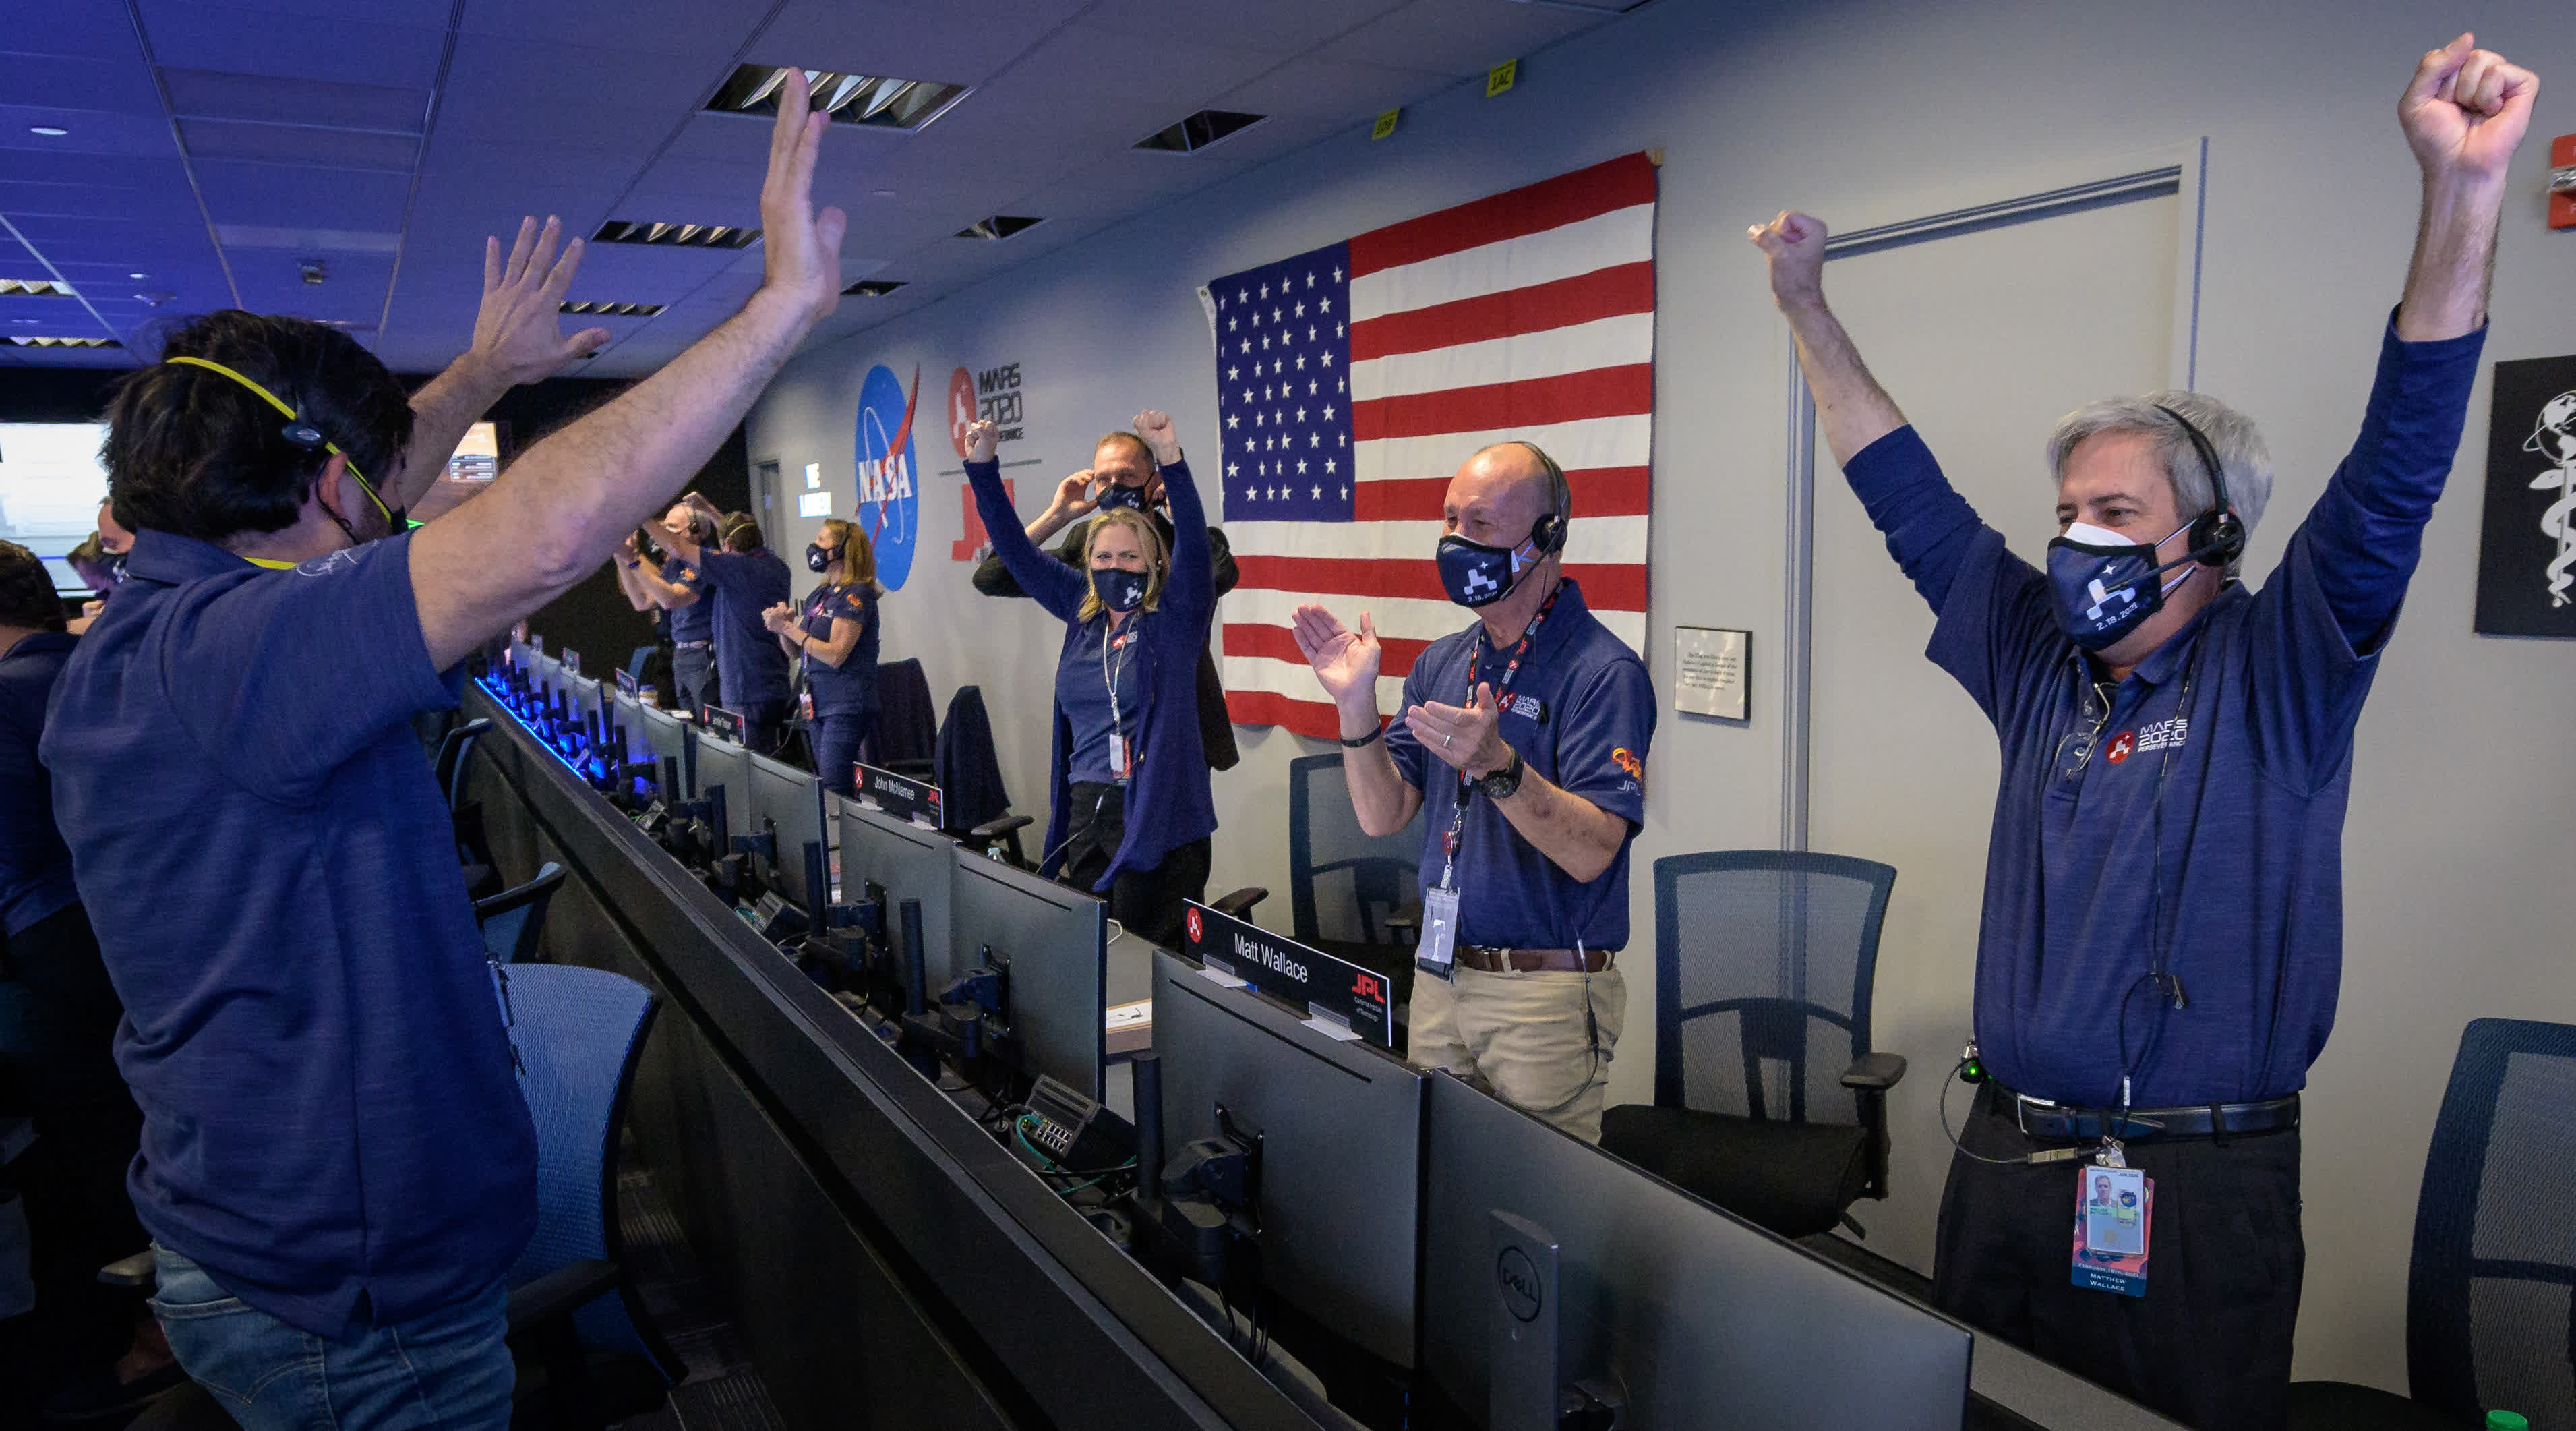 Touchdown: NASA's Mars Perseverance rover lands safely on the Red Planet